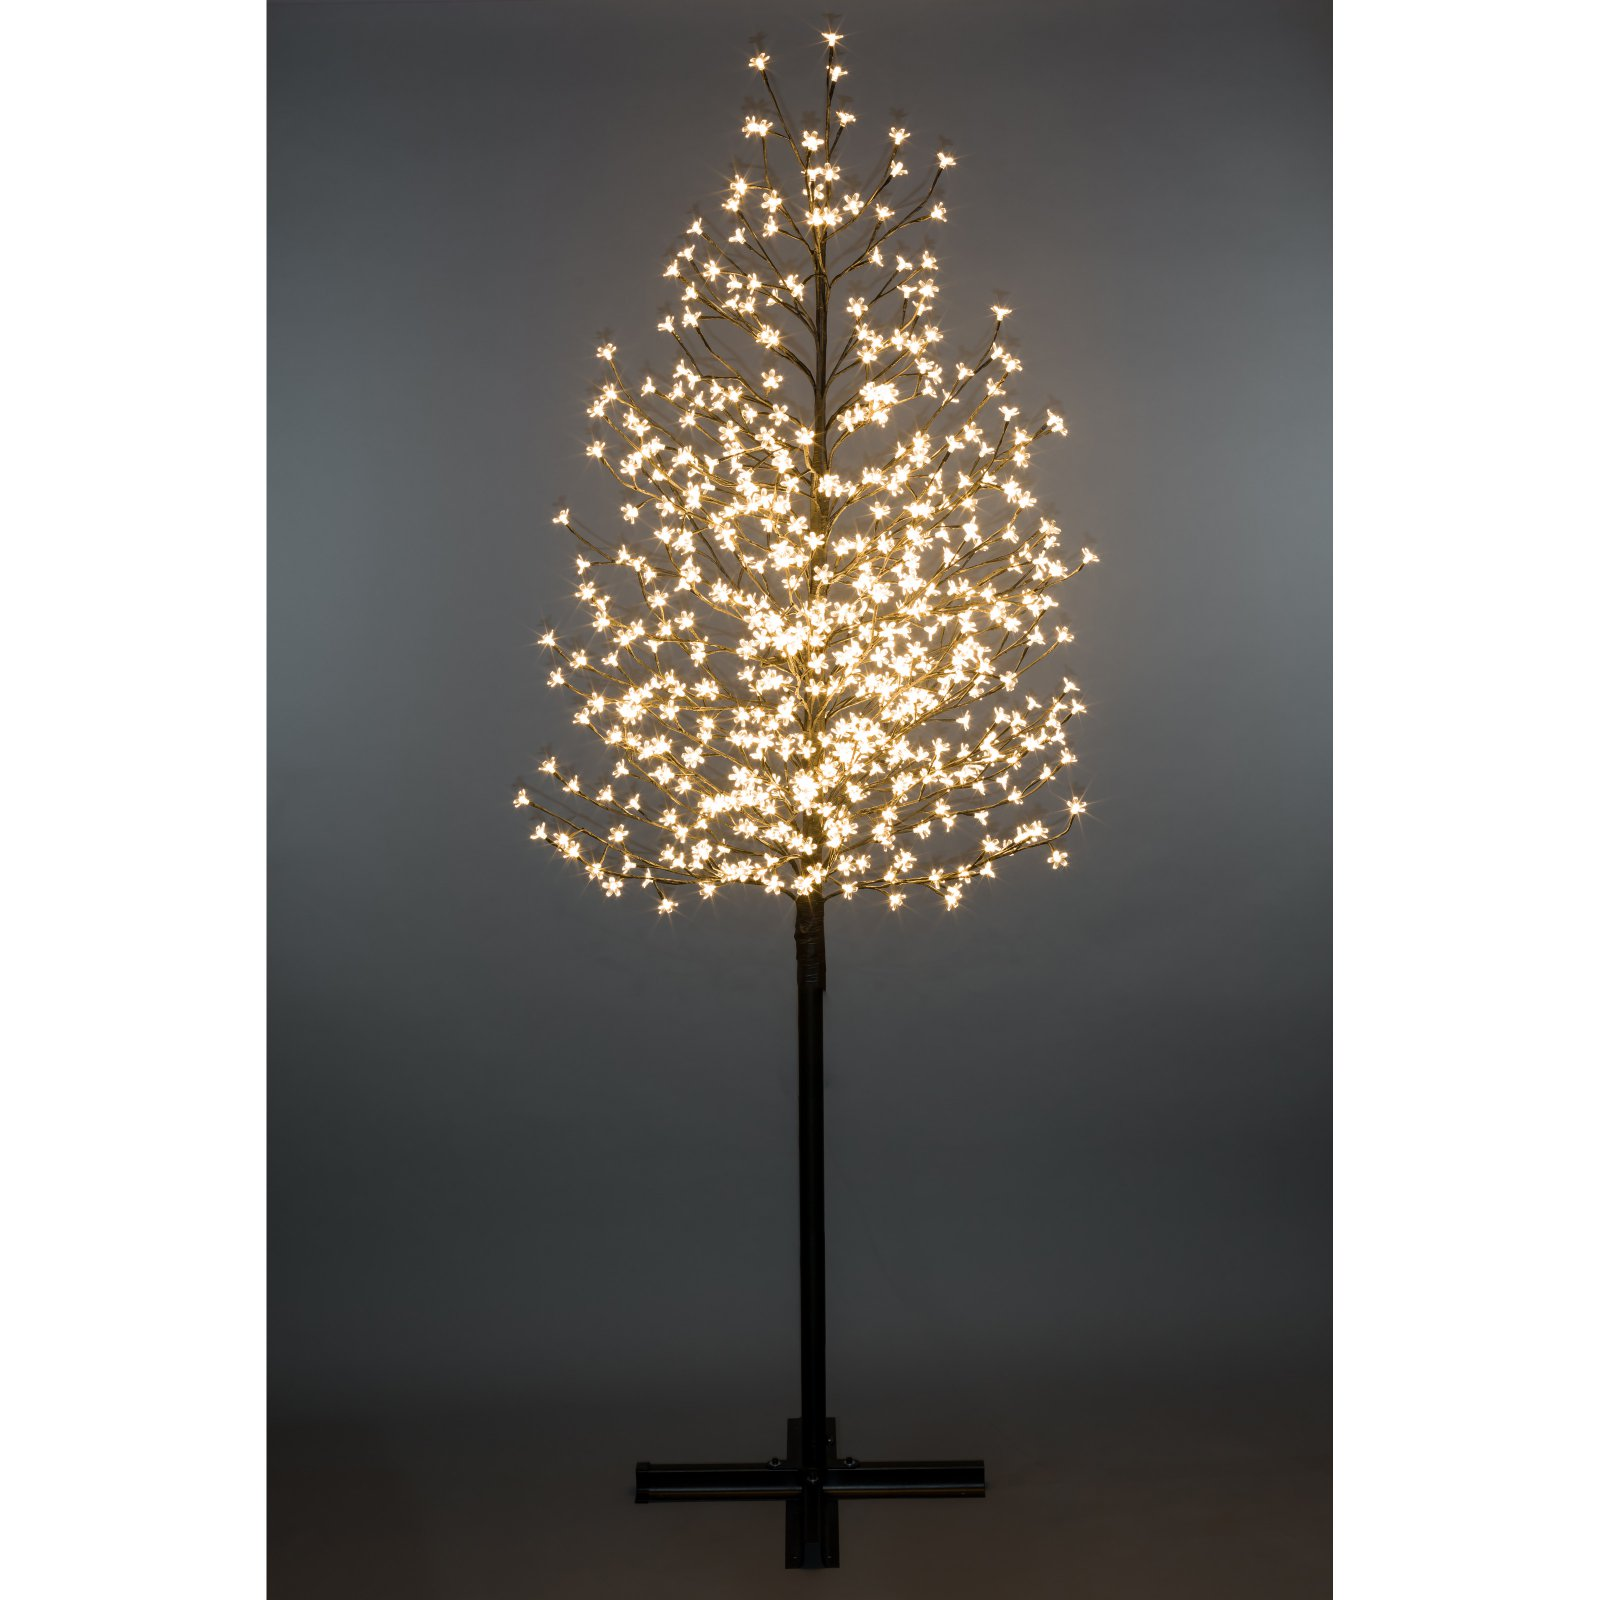 FLORAL LIGHTS- OUTDOOR CHERRY BLOSSOM TREE 576WW LED WITH CONTROL